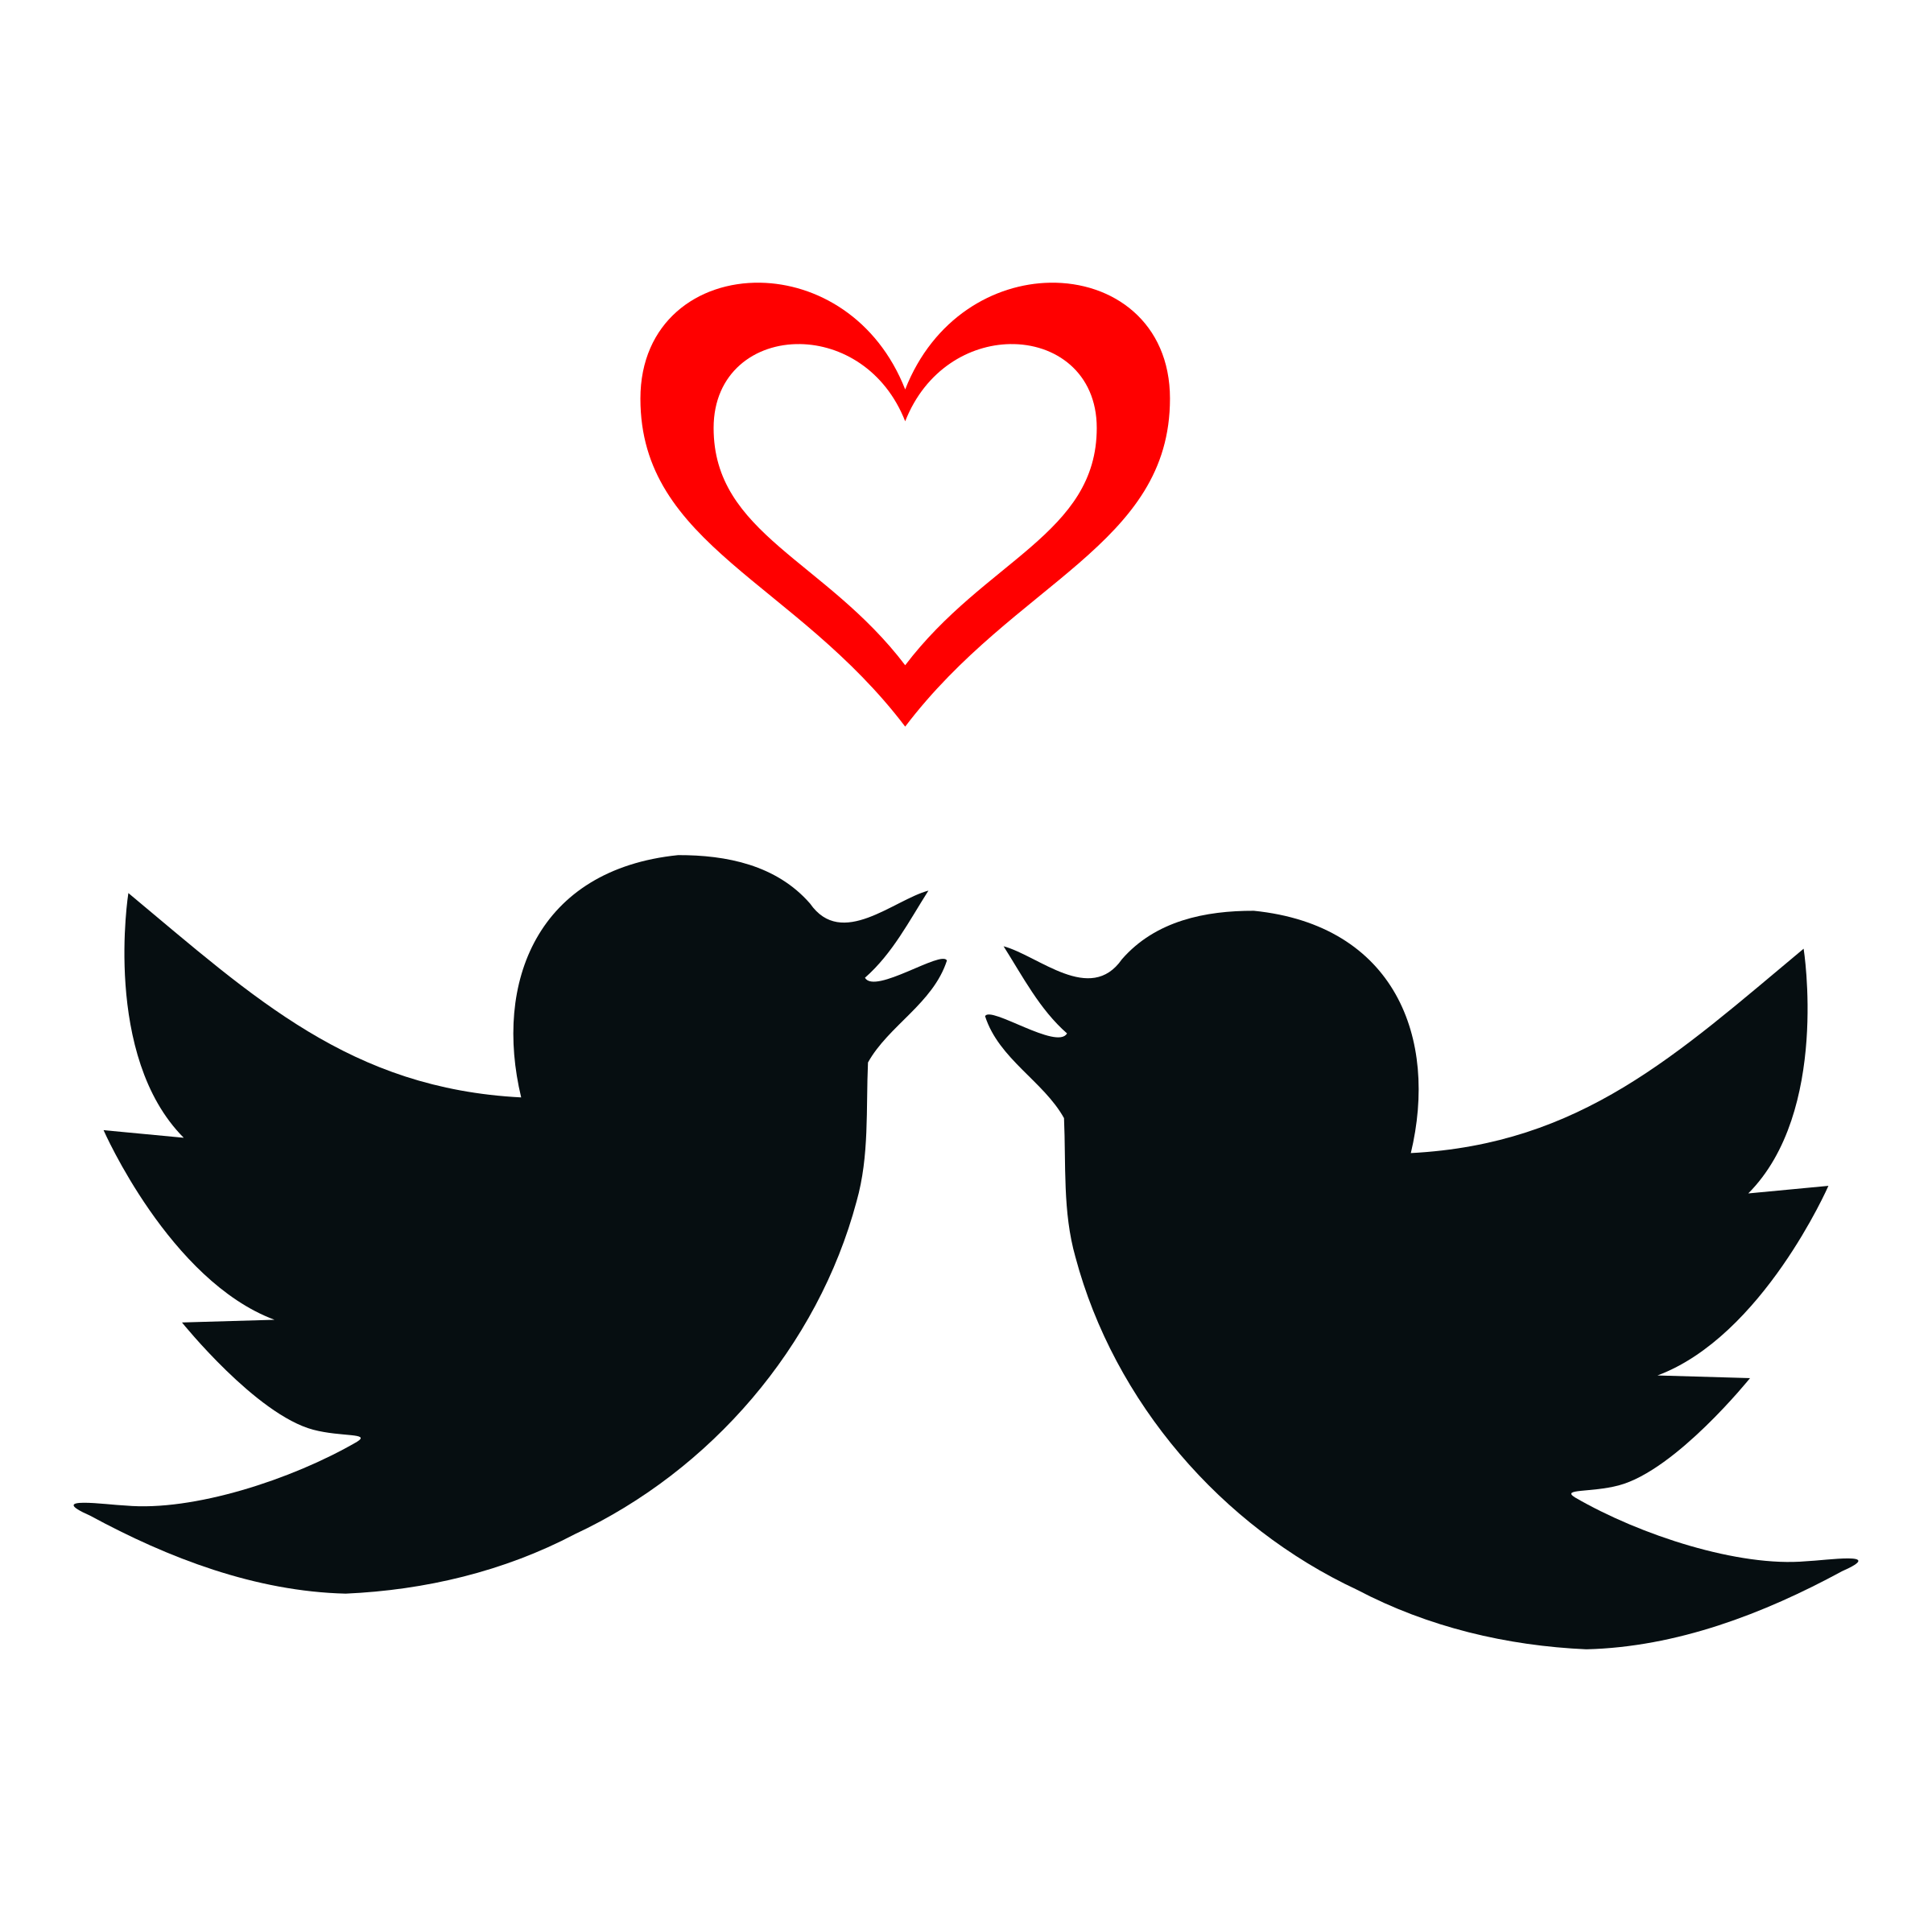 2400x2400 Two Lovebirds And Valentine's Day Heart Vector Clipart Image